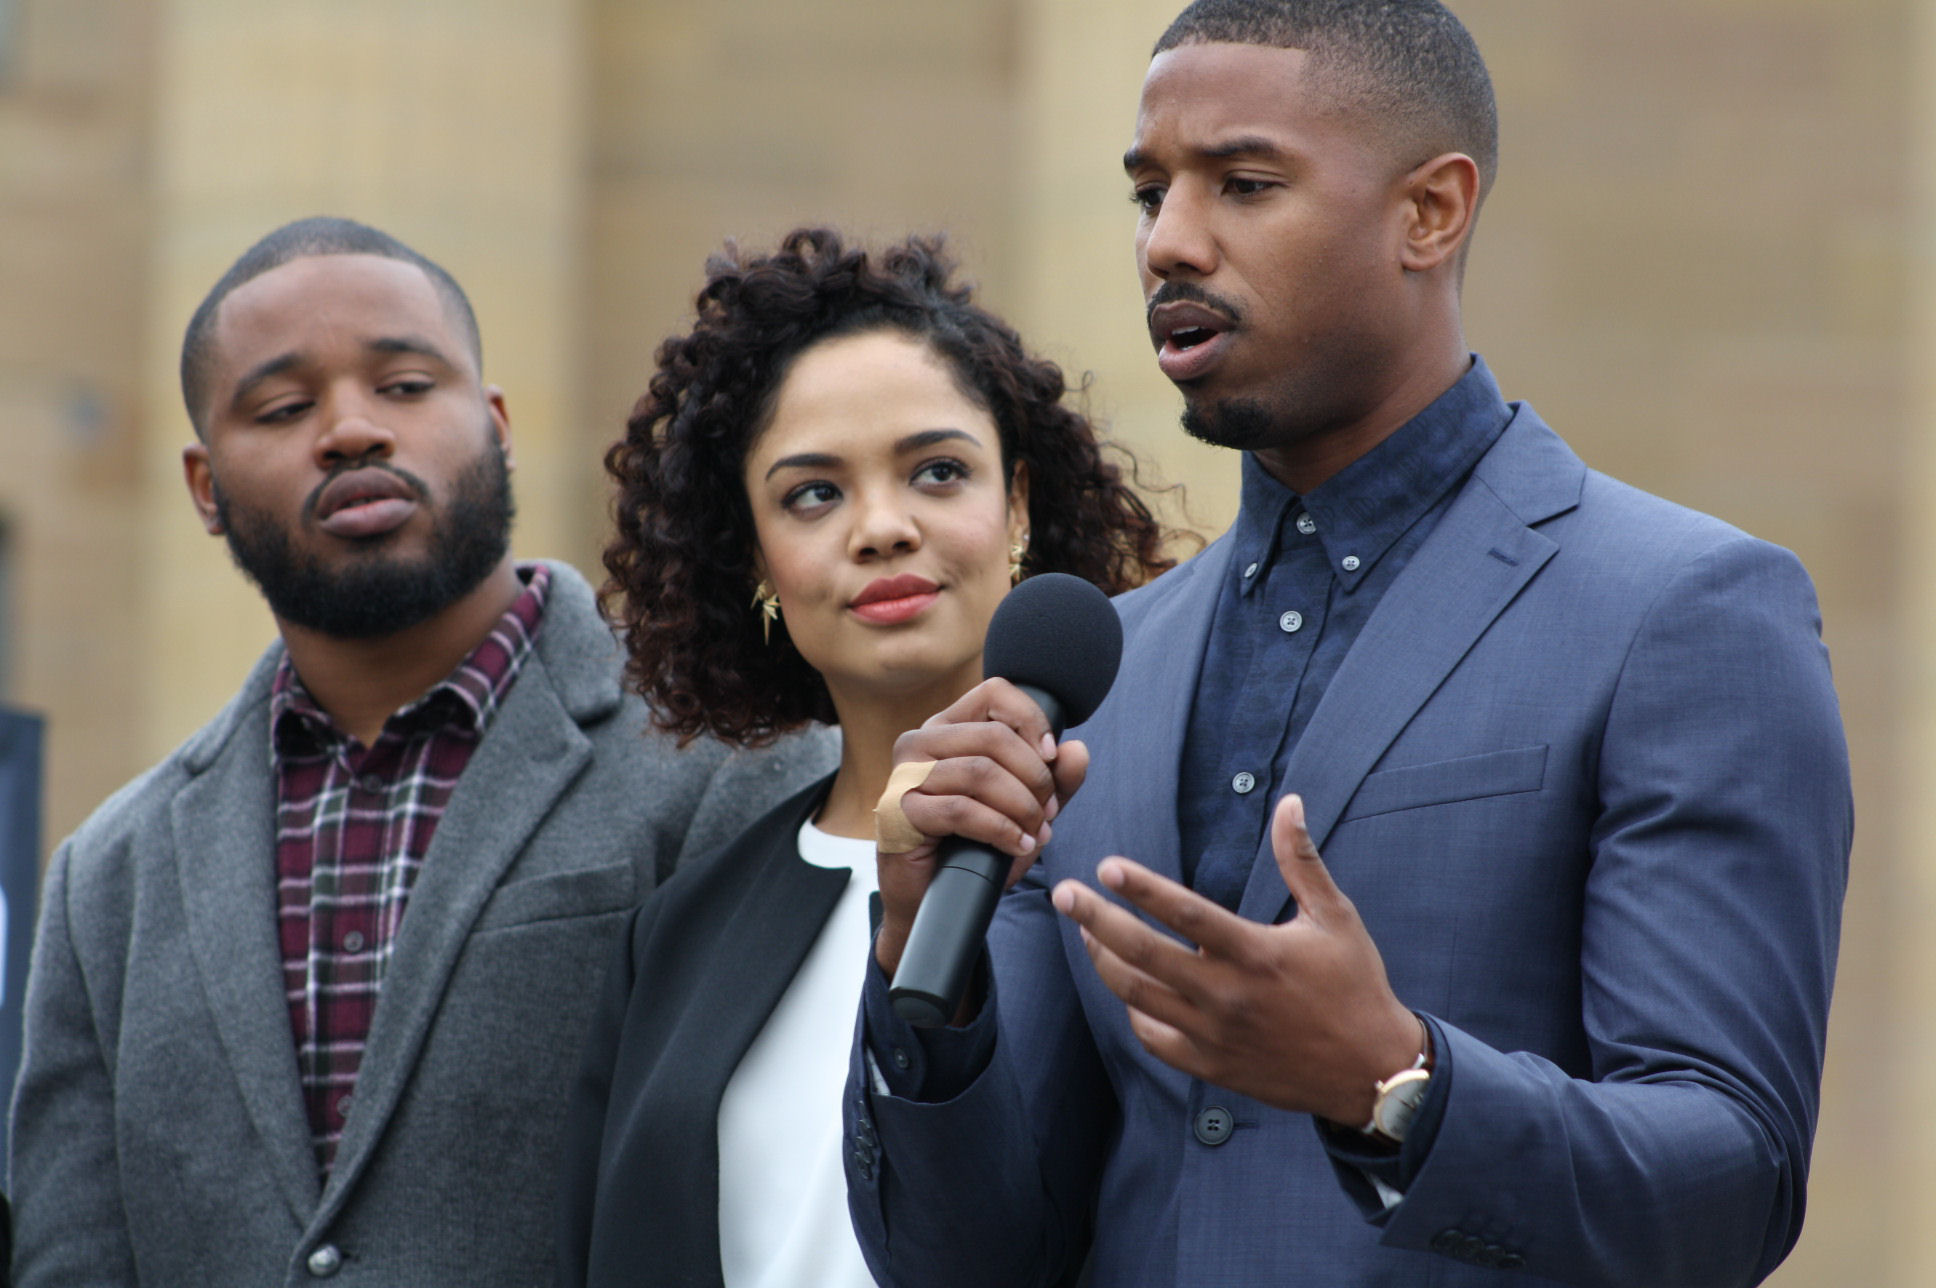 Director Ryan Coogler and co-star Tessa Thompson look on while Michael B Jordan talks about his role in the latest ROCKY franchise installment, CREED.